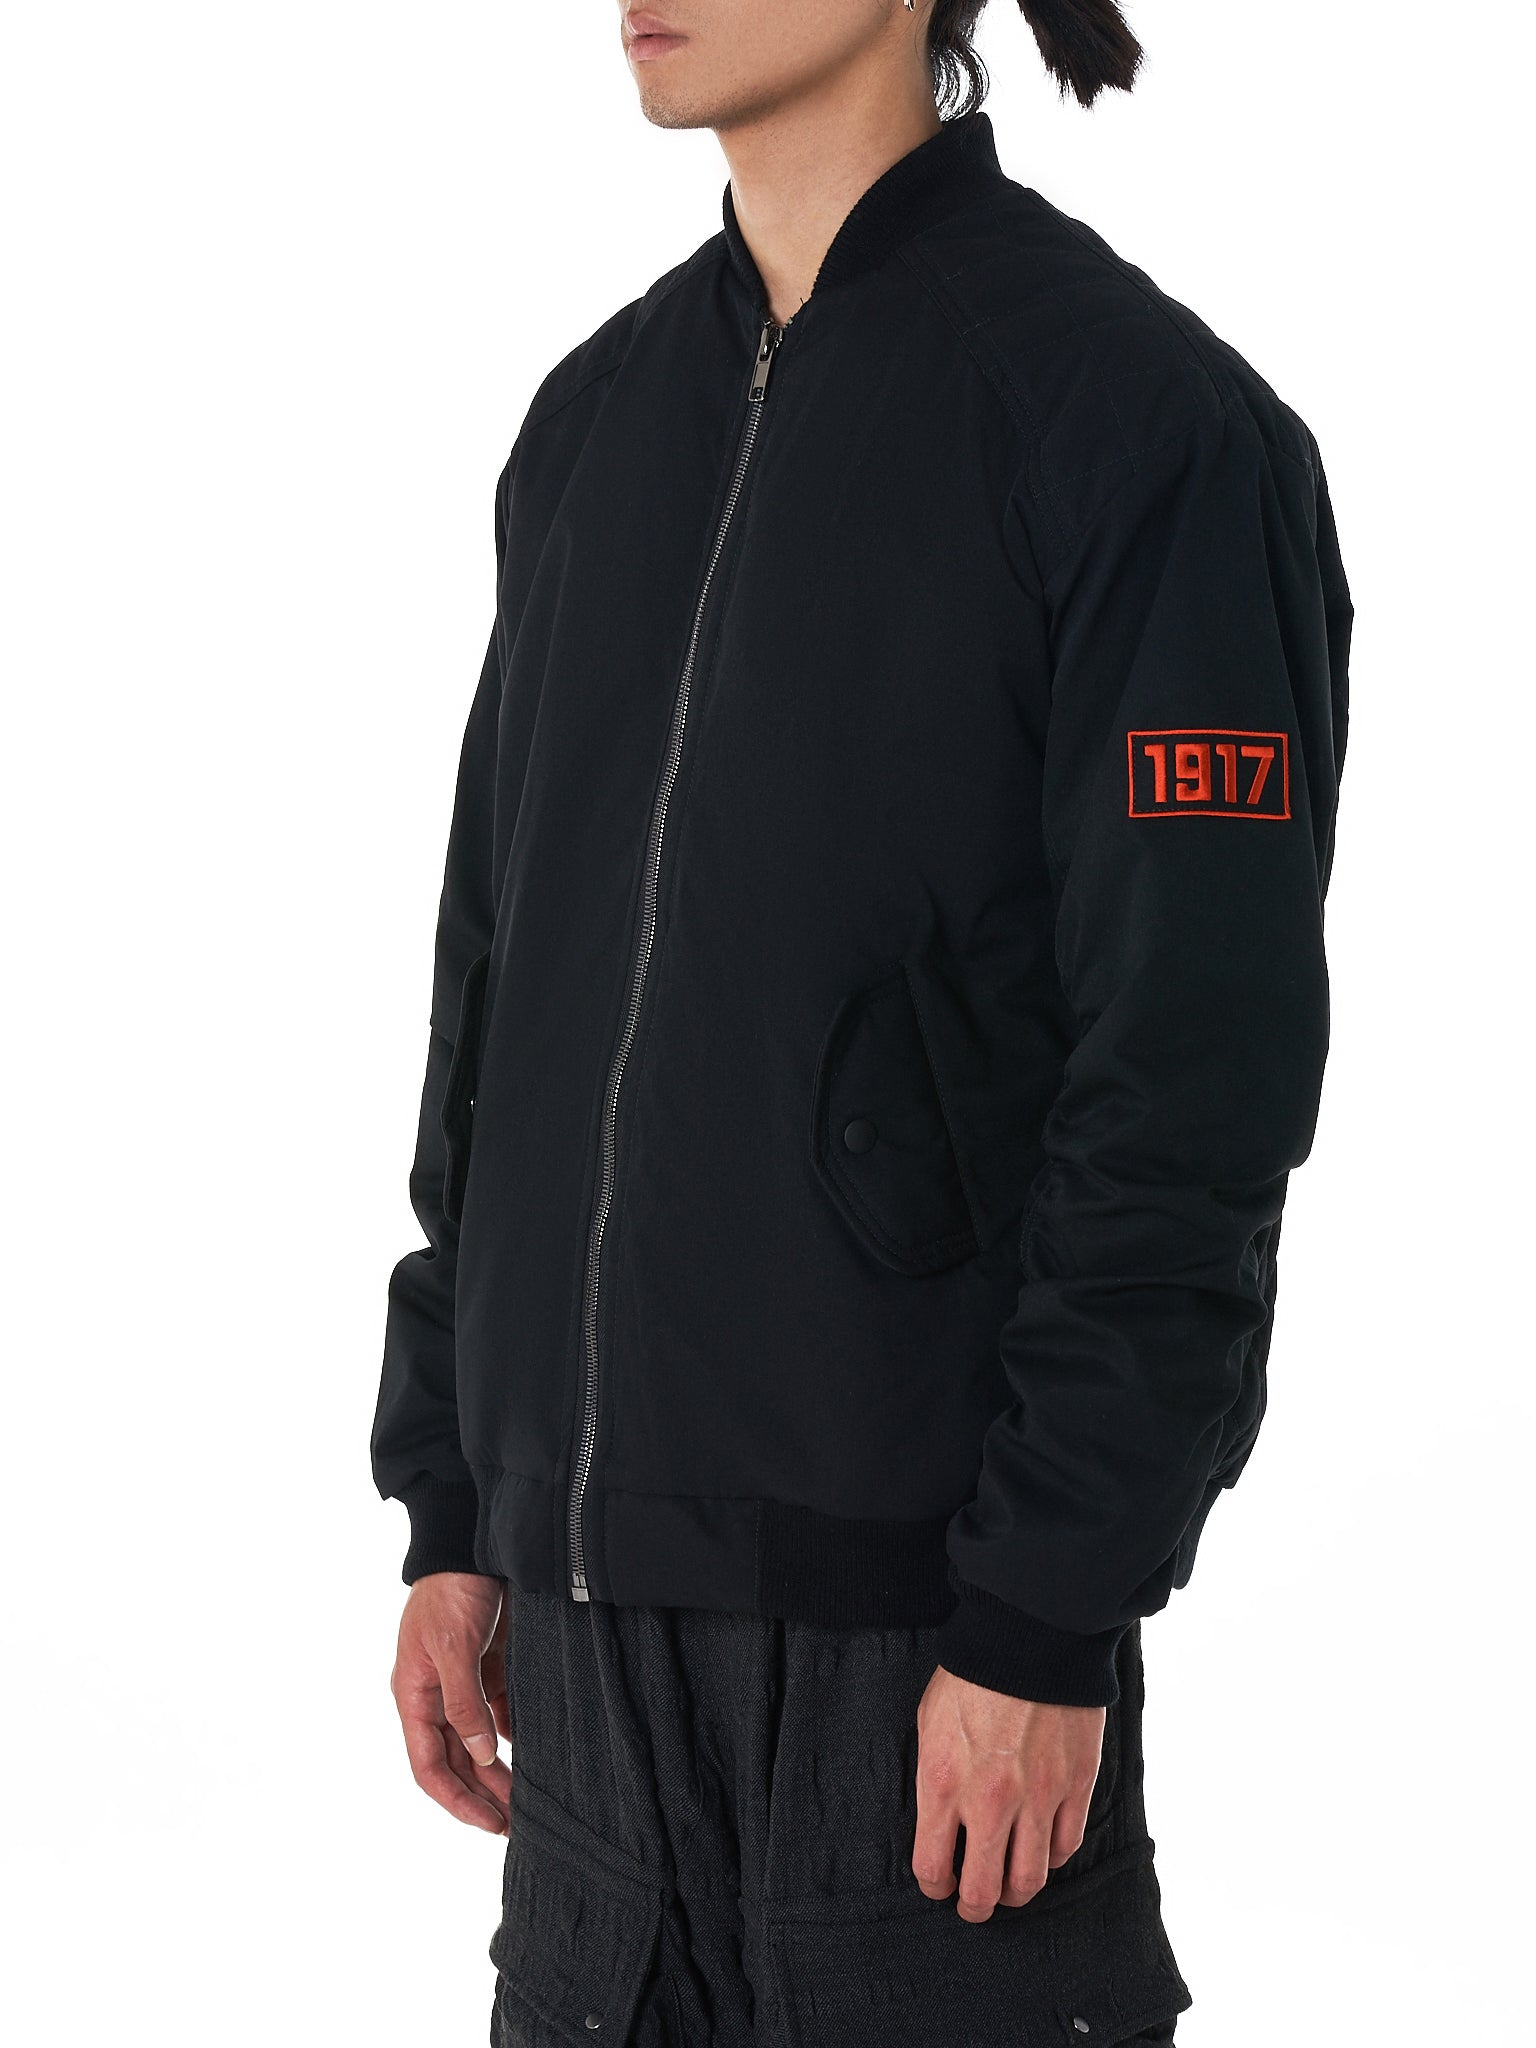 Sovetsky1917 Bomber Jacket - Hlorenzo Side